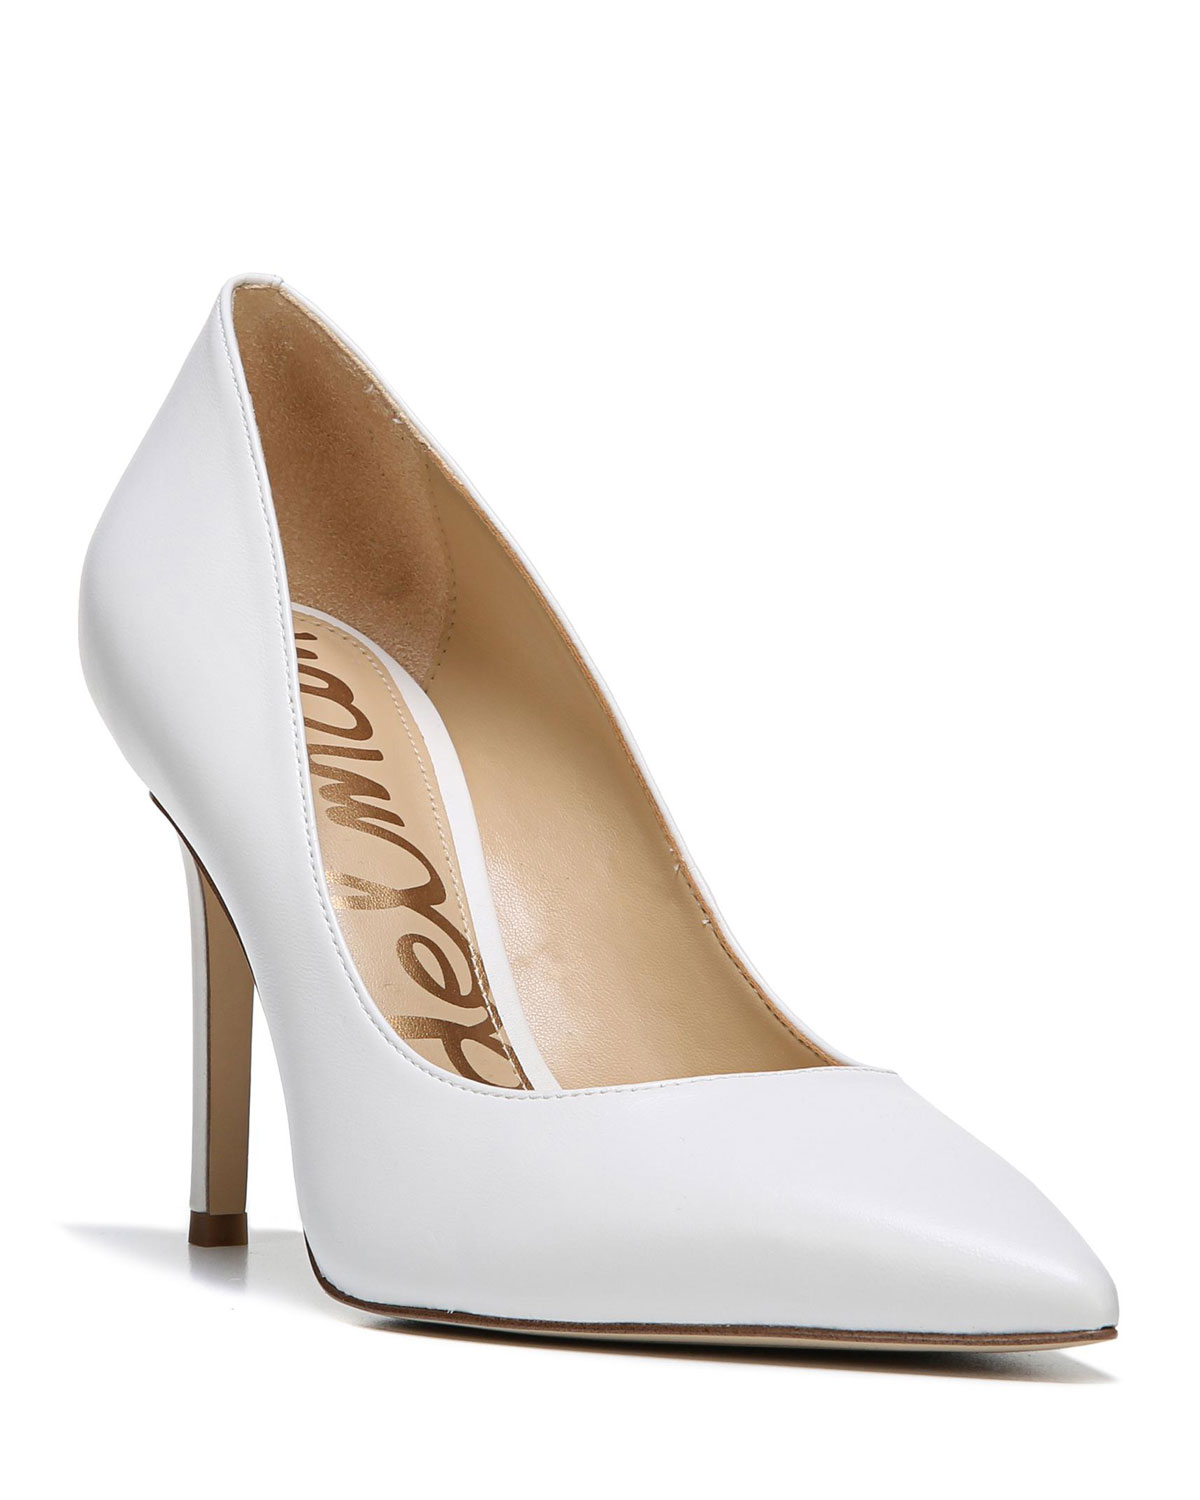 f903297a8e Sam Edelman Hazel Napa Leather Pointed-Toe Pumps | Neiman Marcus